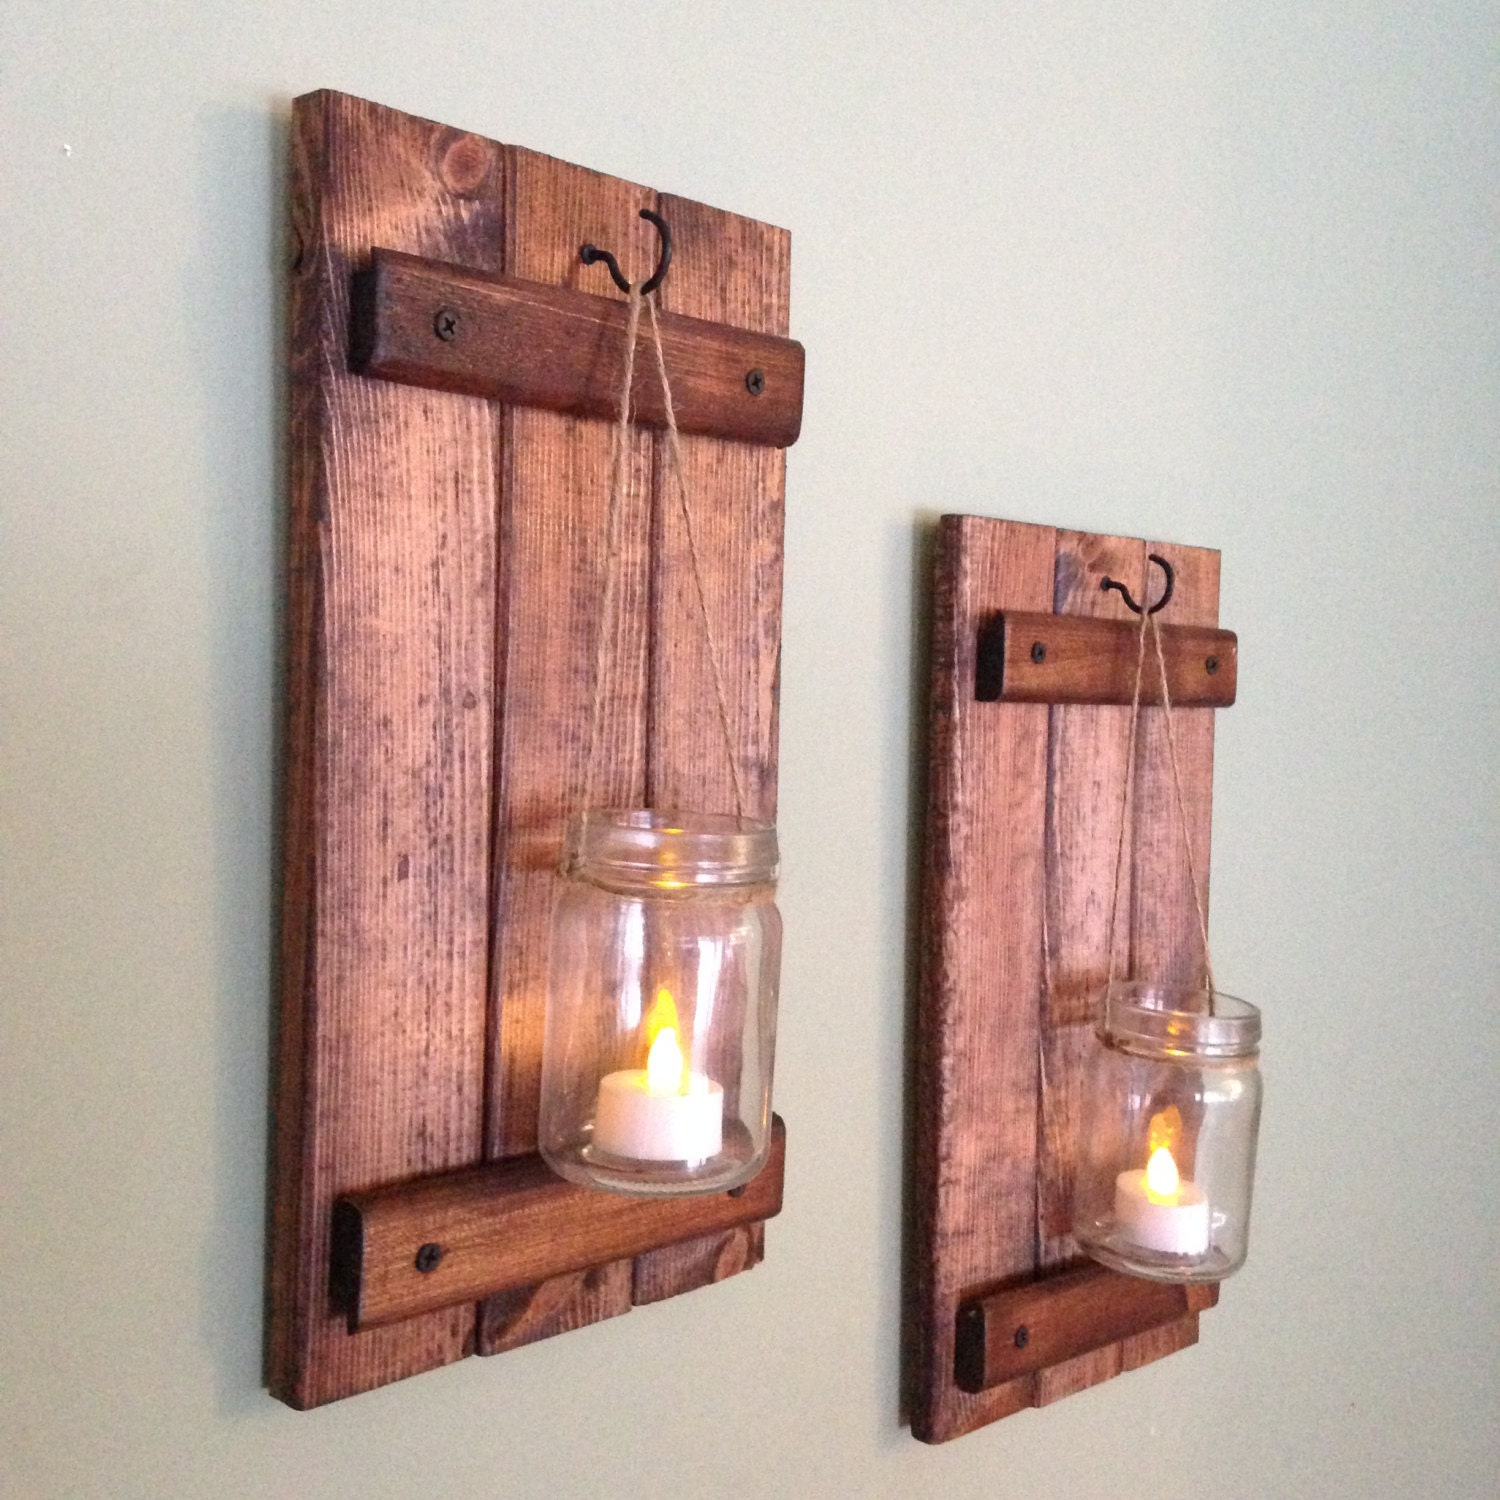 Rustic Wall Decor Best Rustic Wall Decor Wooden Candle Holder Rustic Mason Jar Decorating Inspiration